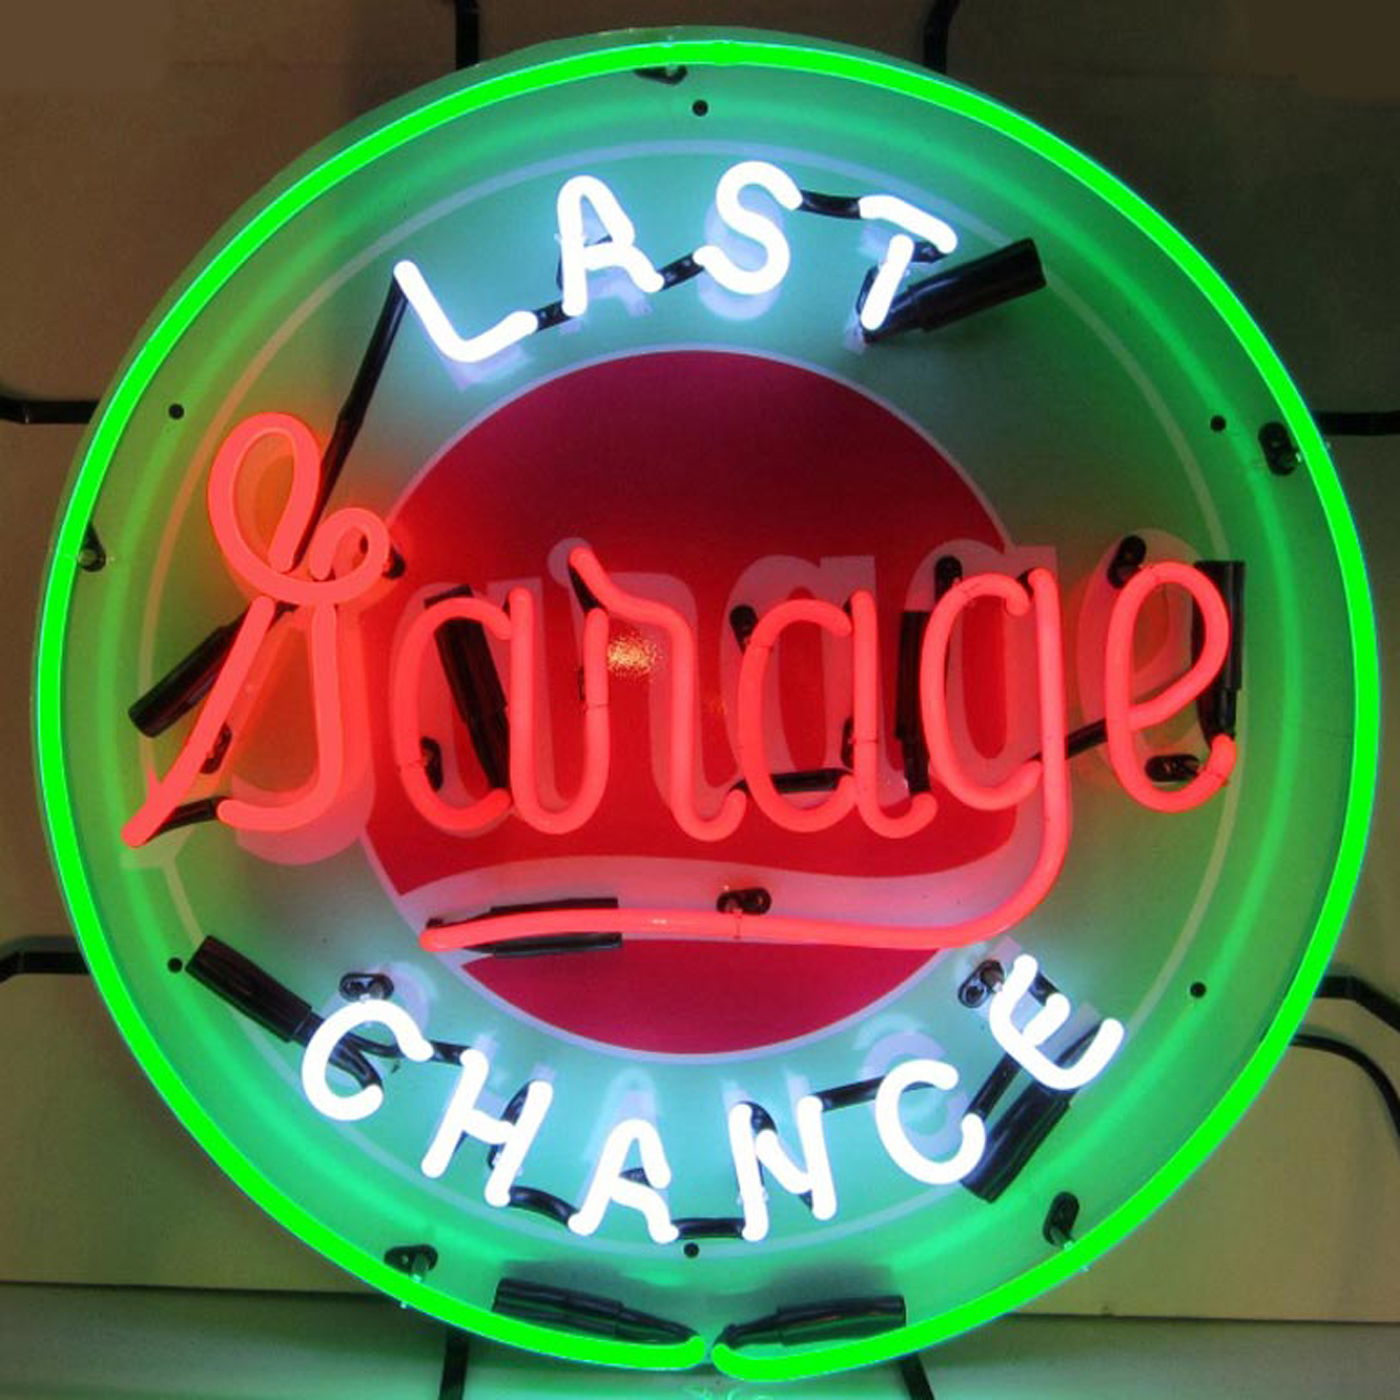 Garage Art Neon Signs Last Chance Garage Neon Sign By Neonetics In Neon Signs